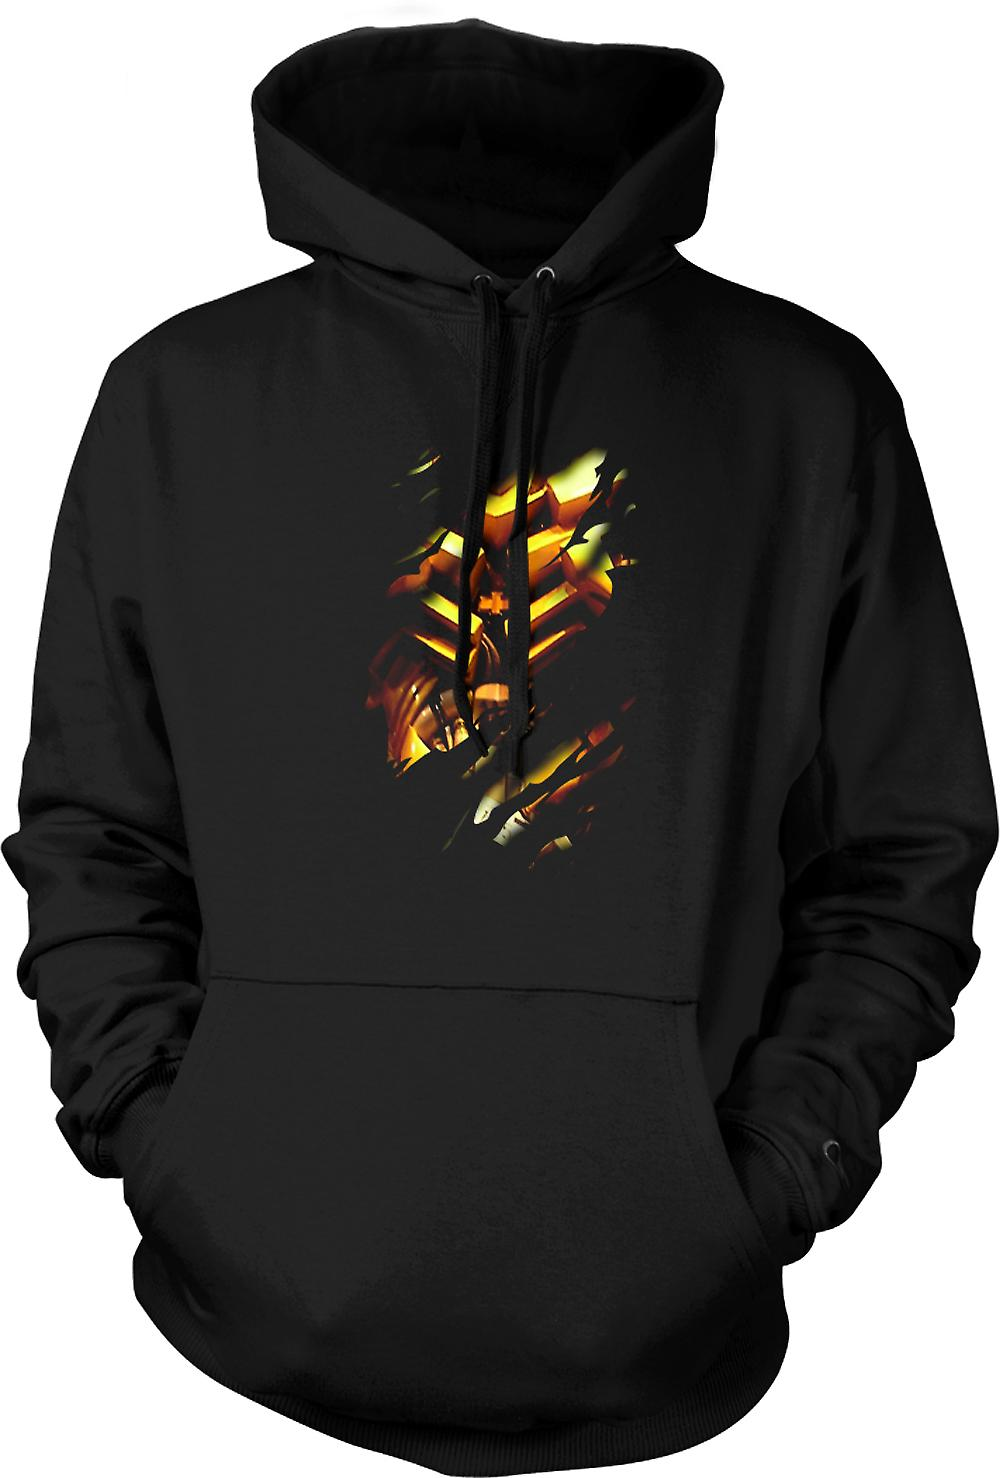 Mens Hoodie - Bumble bee Ripped Design - Transformers Inspired